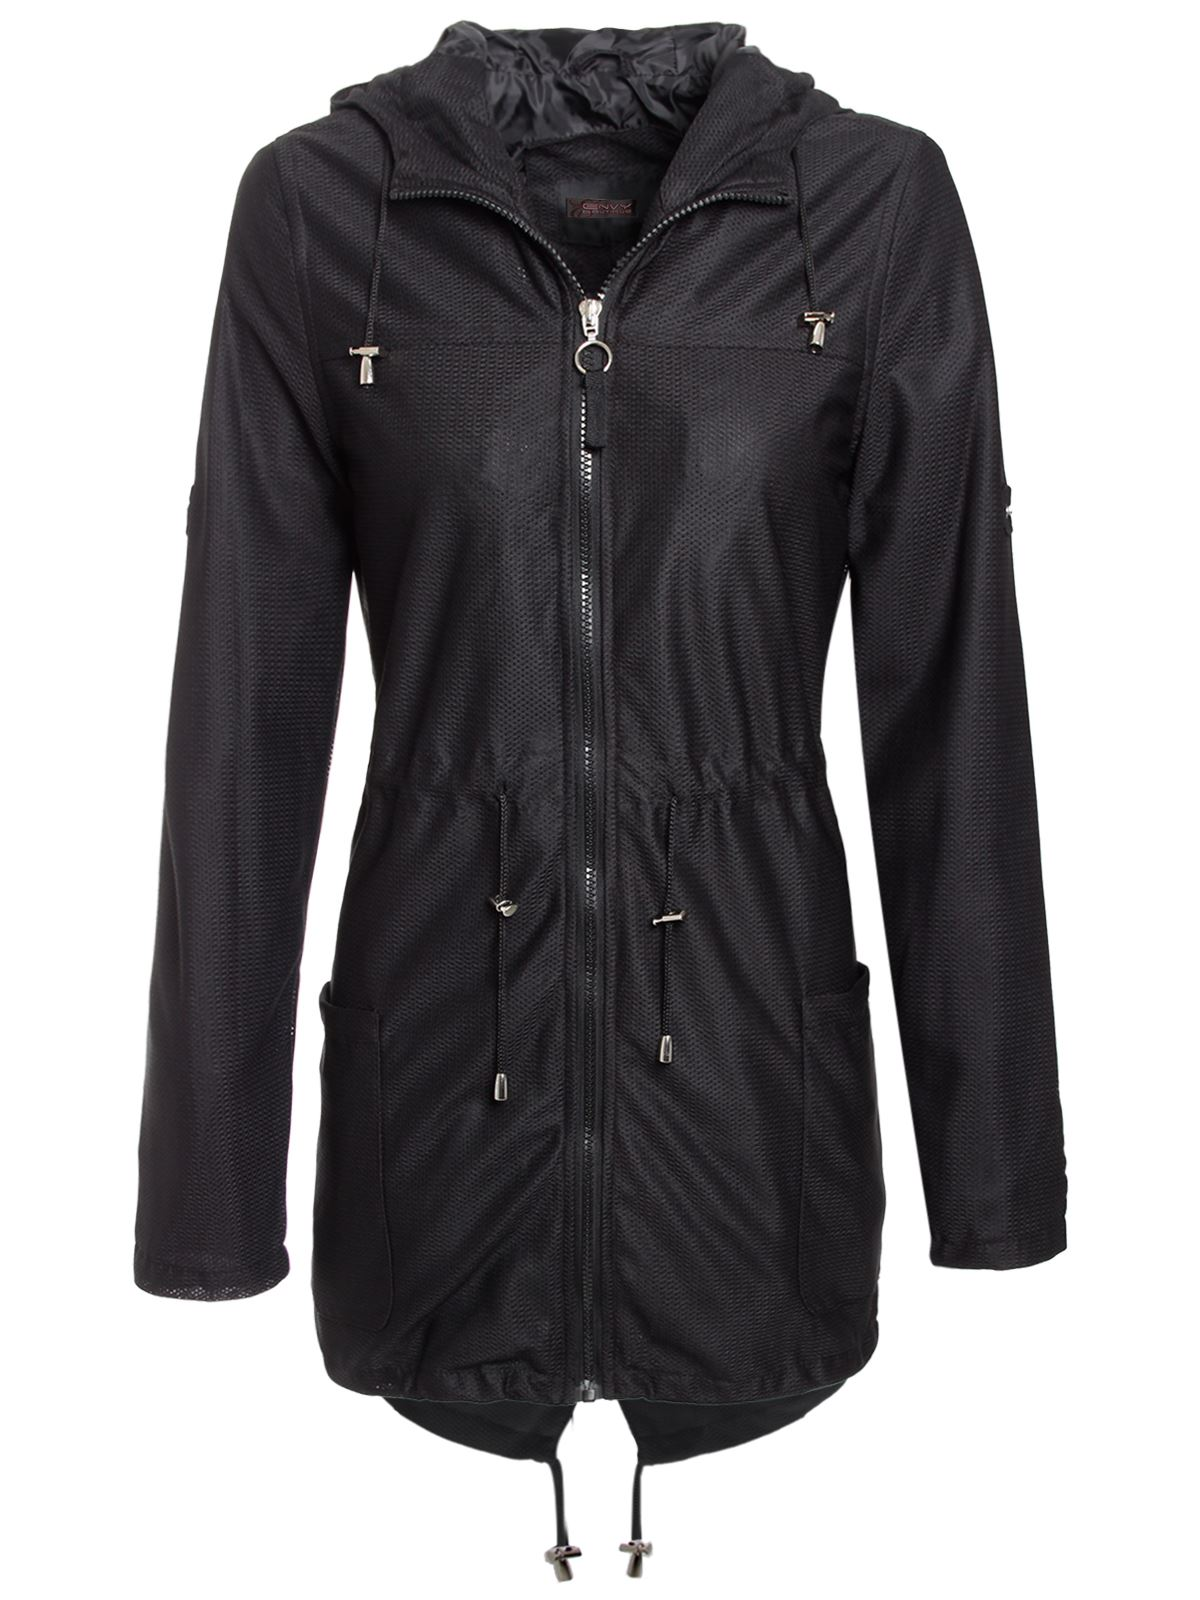 NEW LADIES WOMENS MESH LIGHTWEIGHT PARKA HOODED JACKET SIZES 8-16